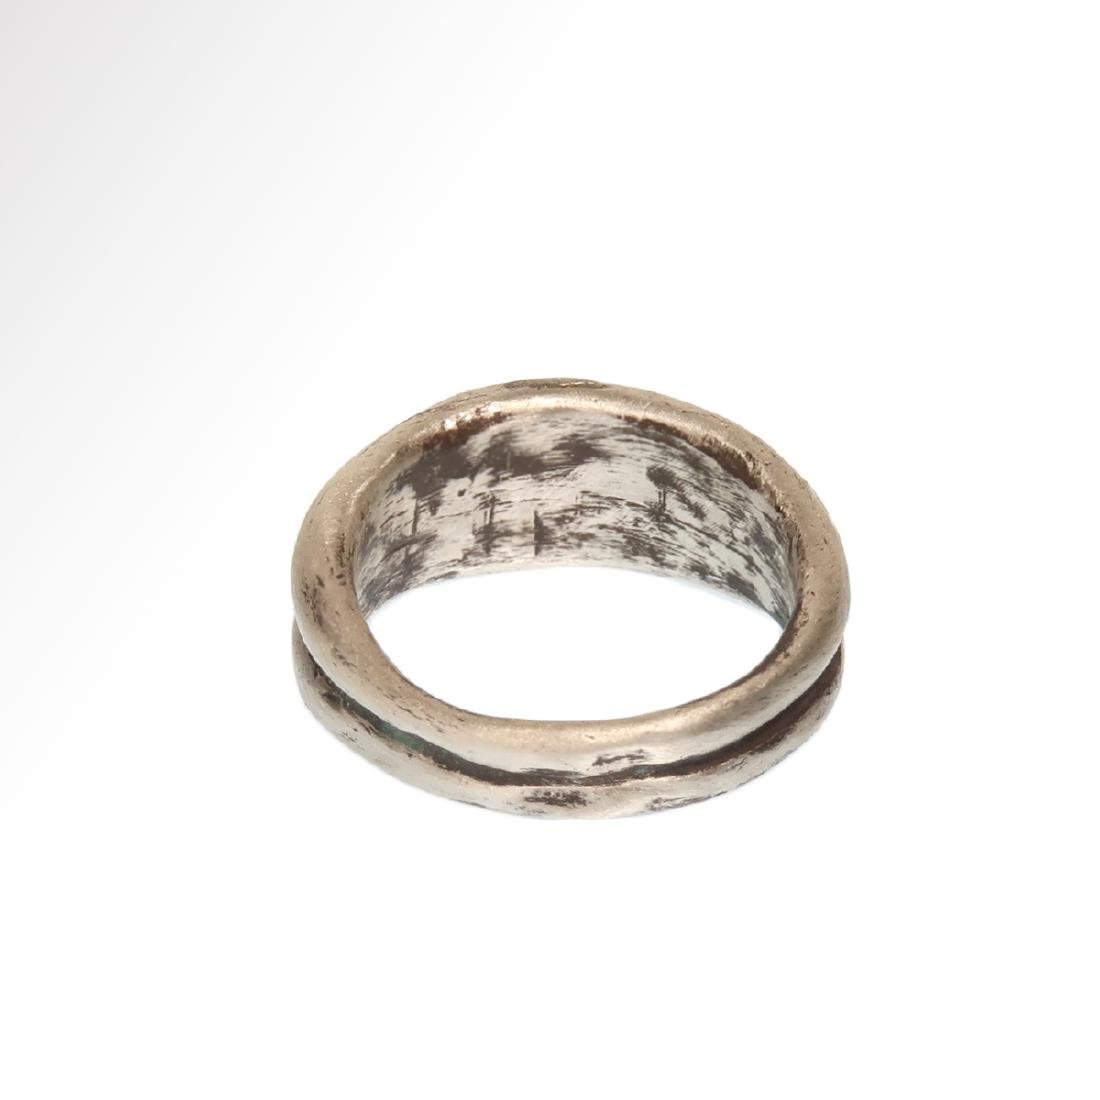 Roman Double Silver Ring with Garnets, c. 3rd Century - 6